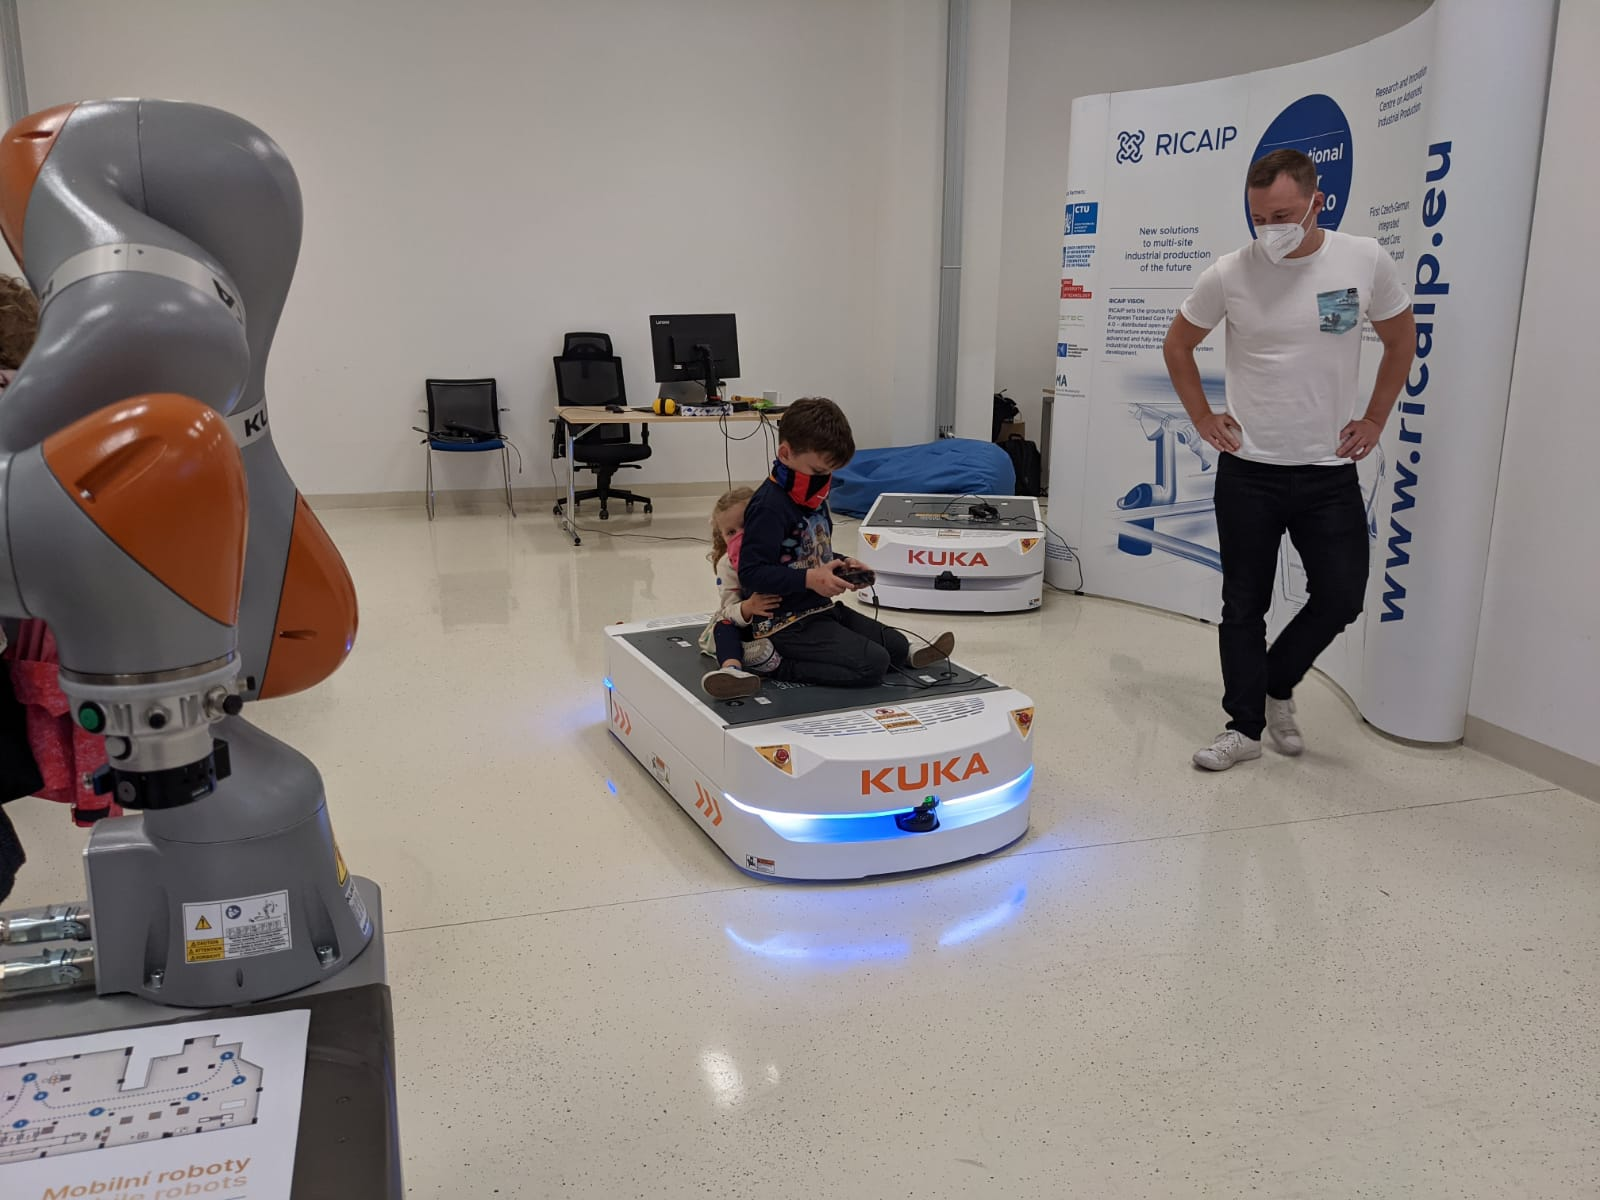 9. <strong>Mobile Robots</strong>